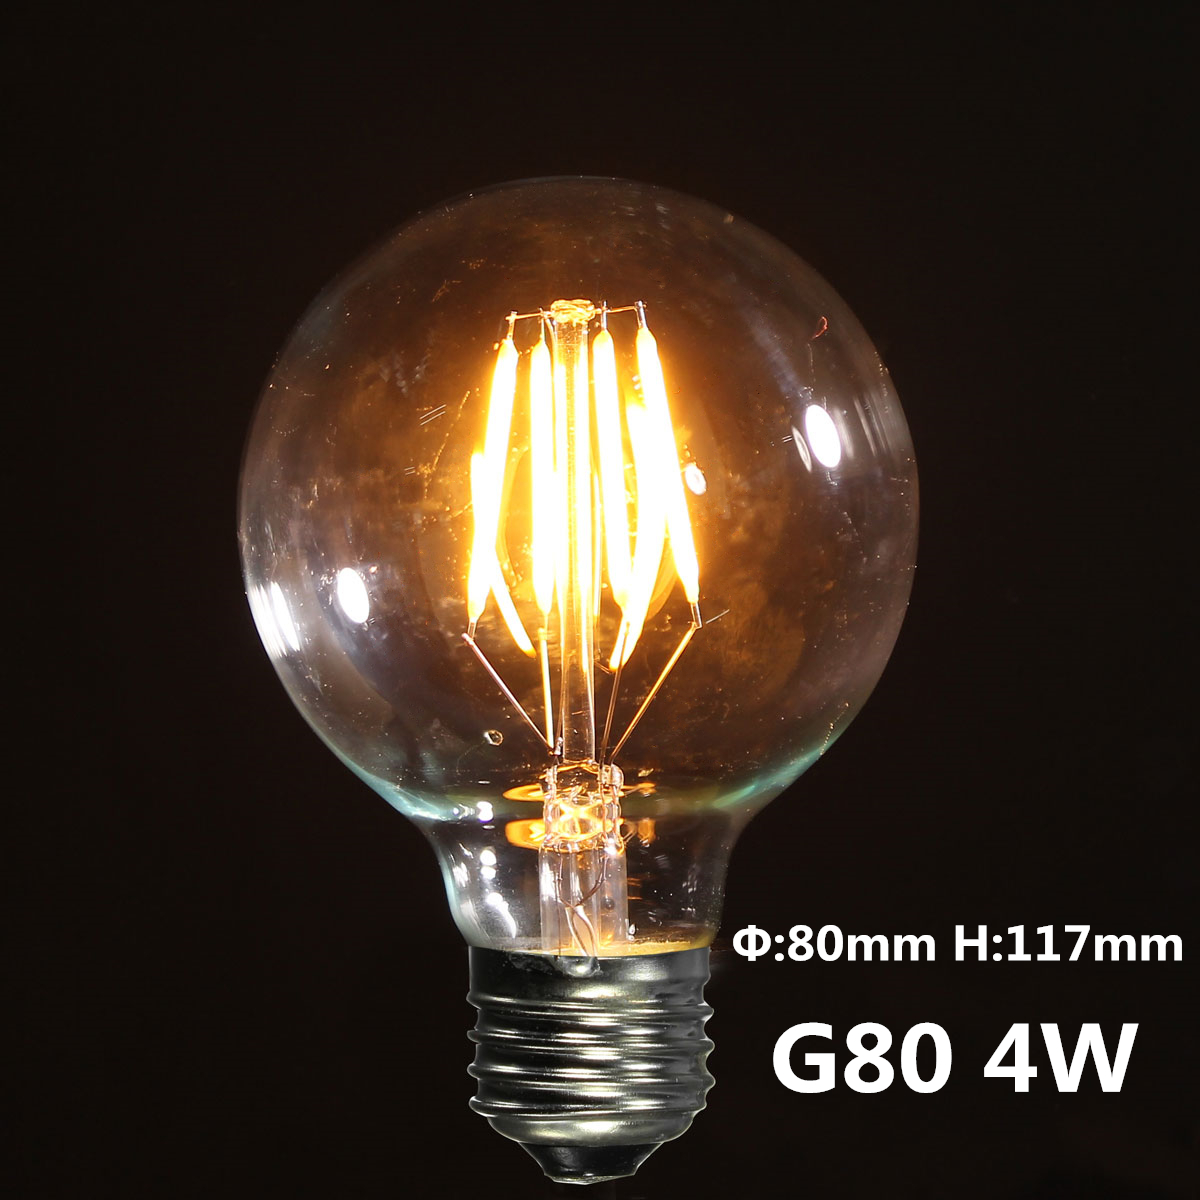 ampoule e27 vintage r tro edison lampe led cob filament bulb spot energy saving ebay. Black Bedroom Furniture Sets. Home Design Ideas